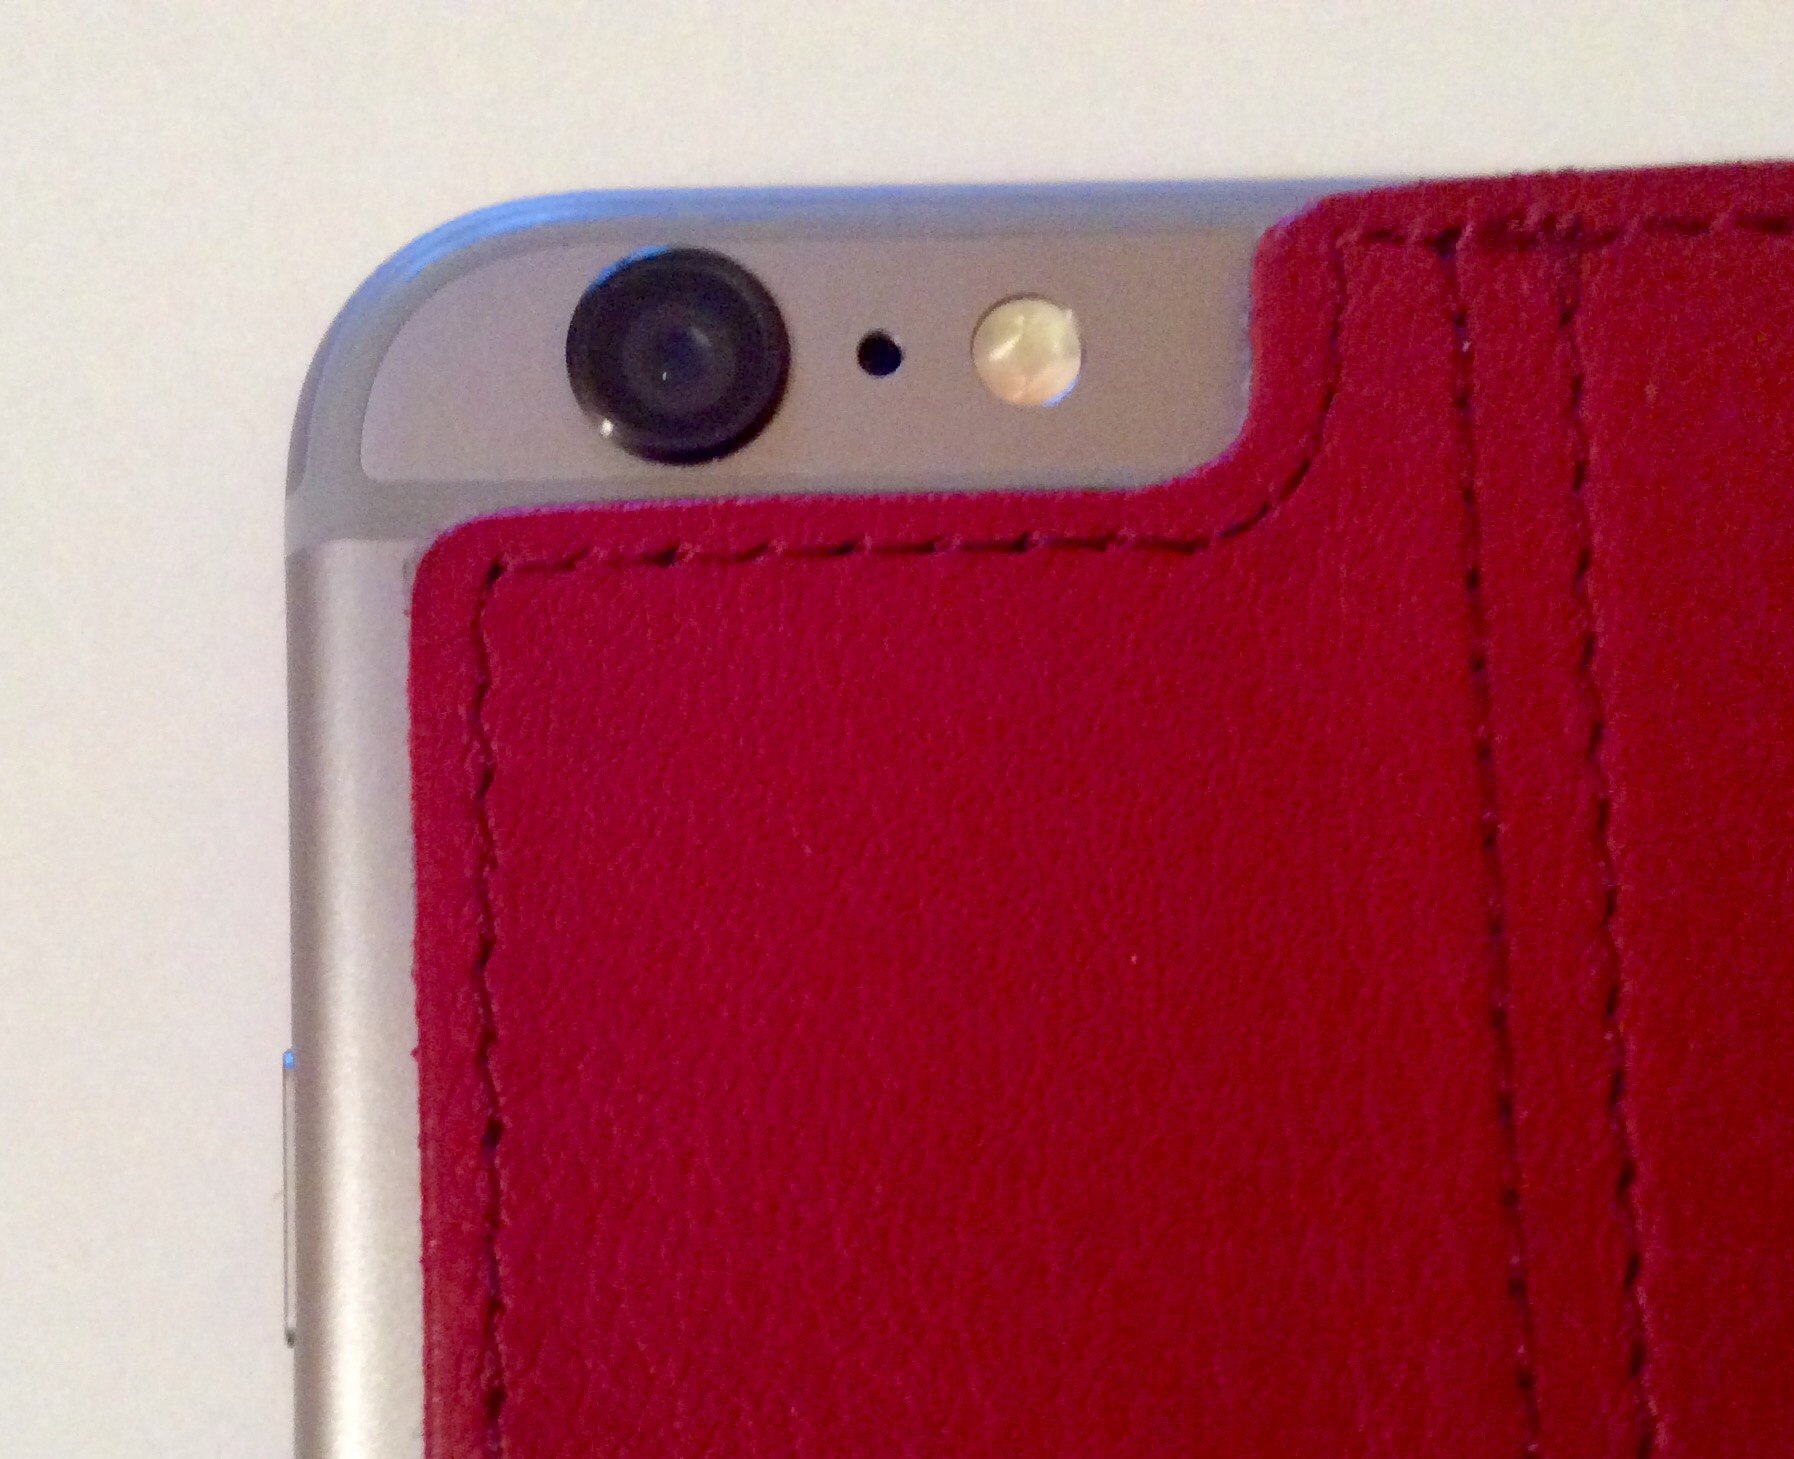 Twelve South SurfacePad for iPhone 6 Plus image 00003